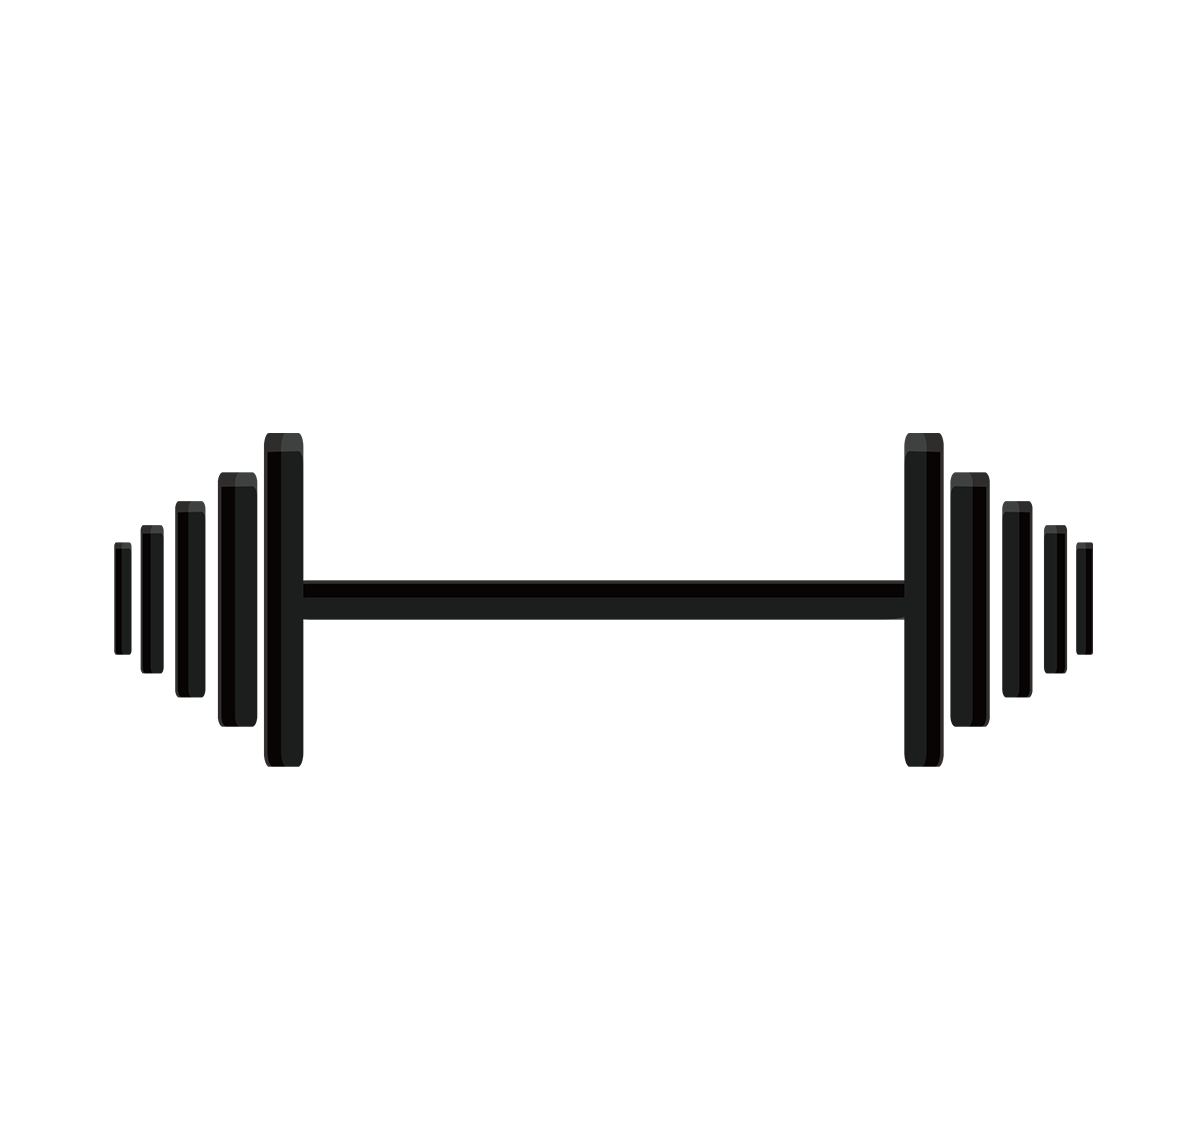 —Pngtree—dumbbell icon_1554636